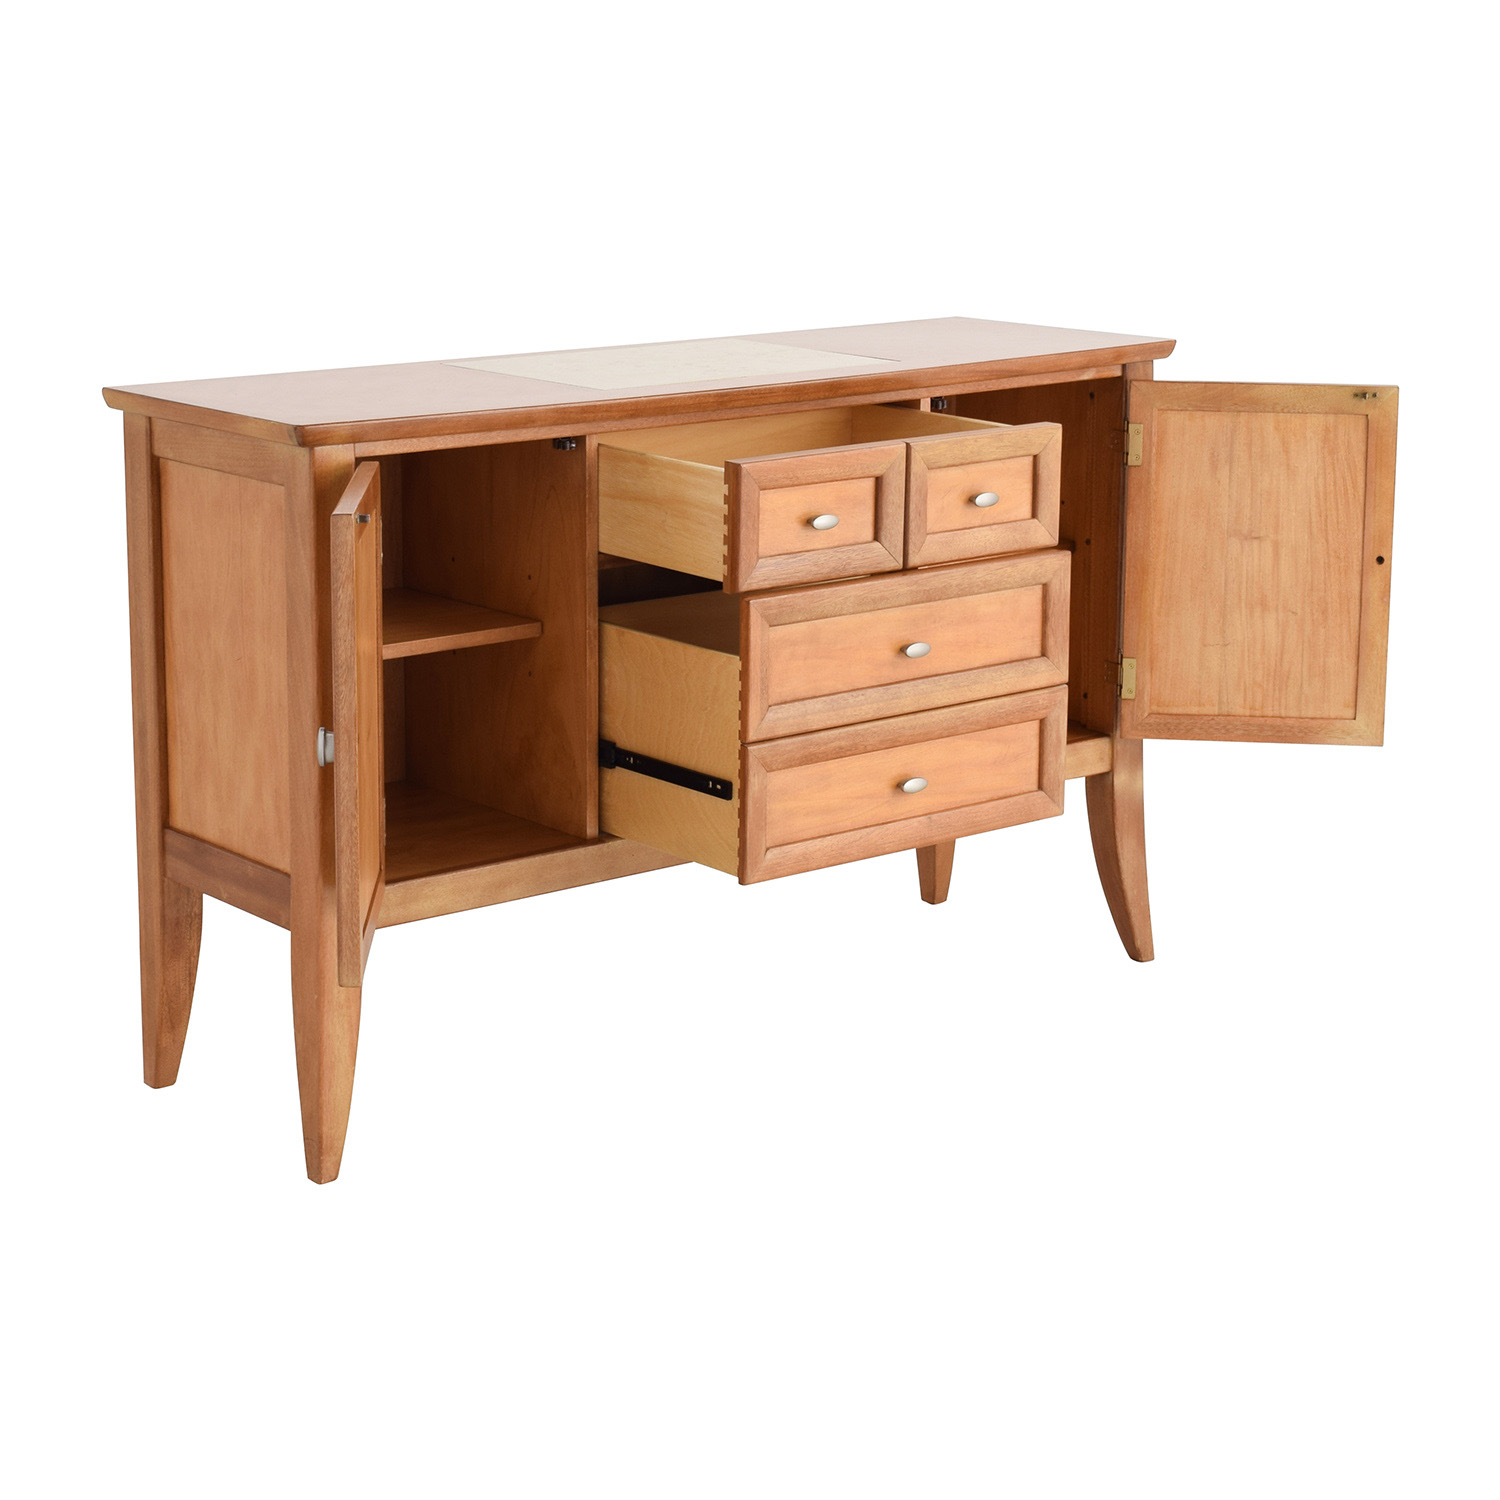 Off thomasville buffet table storage